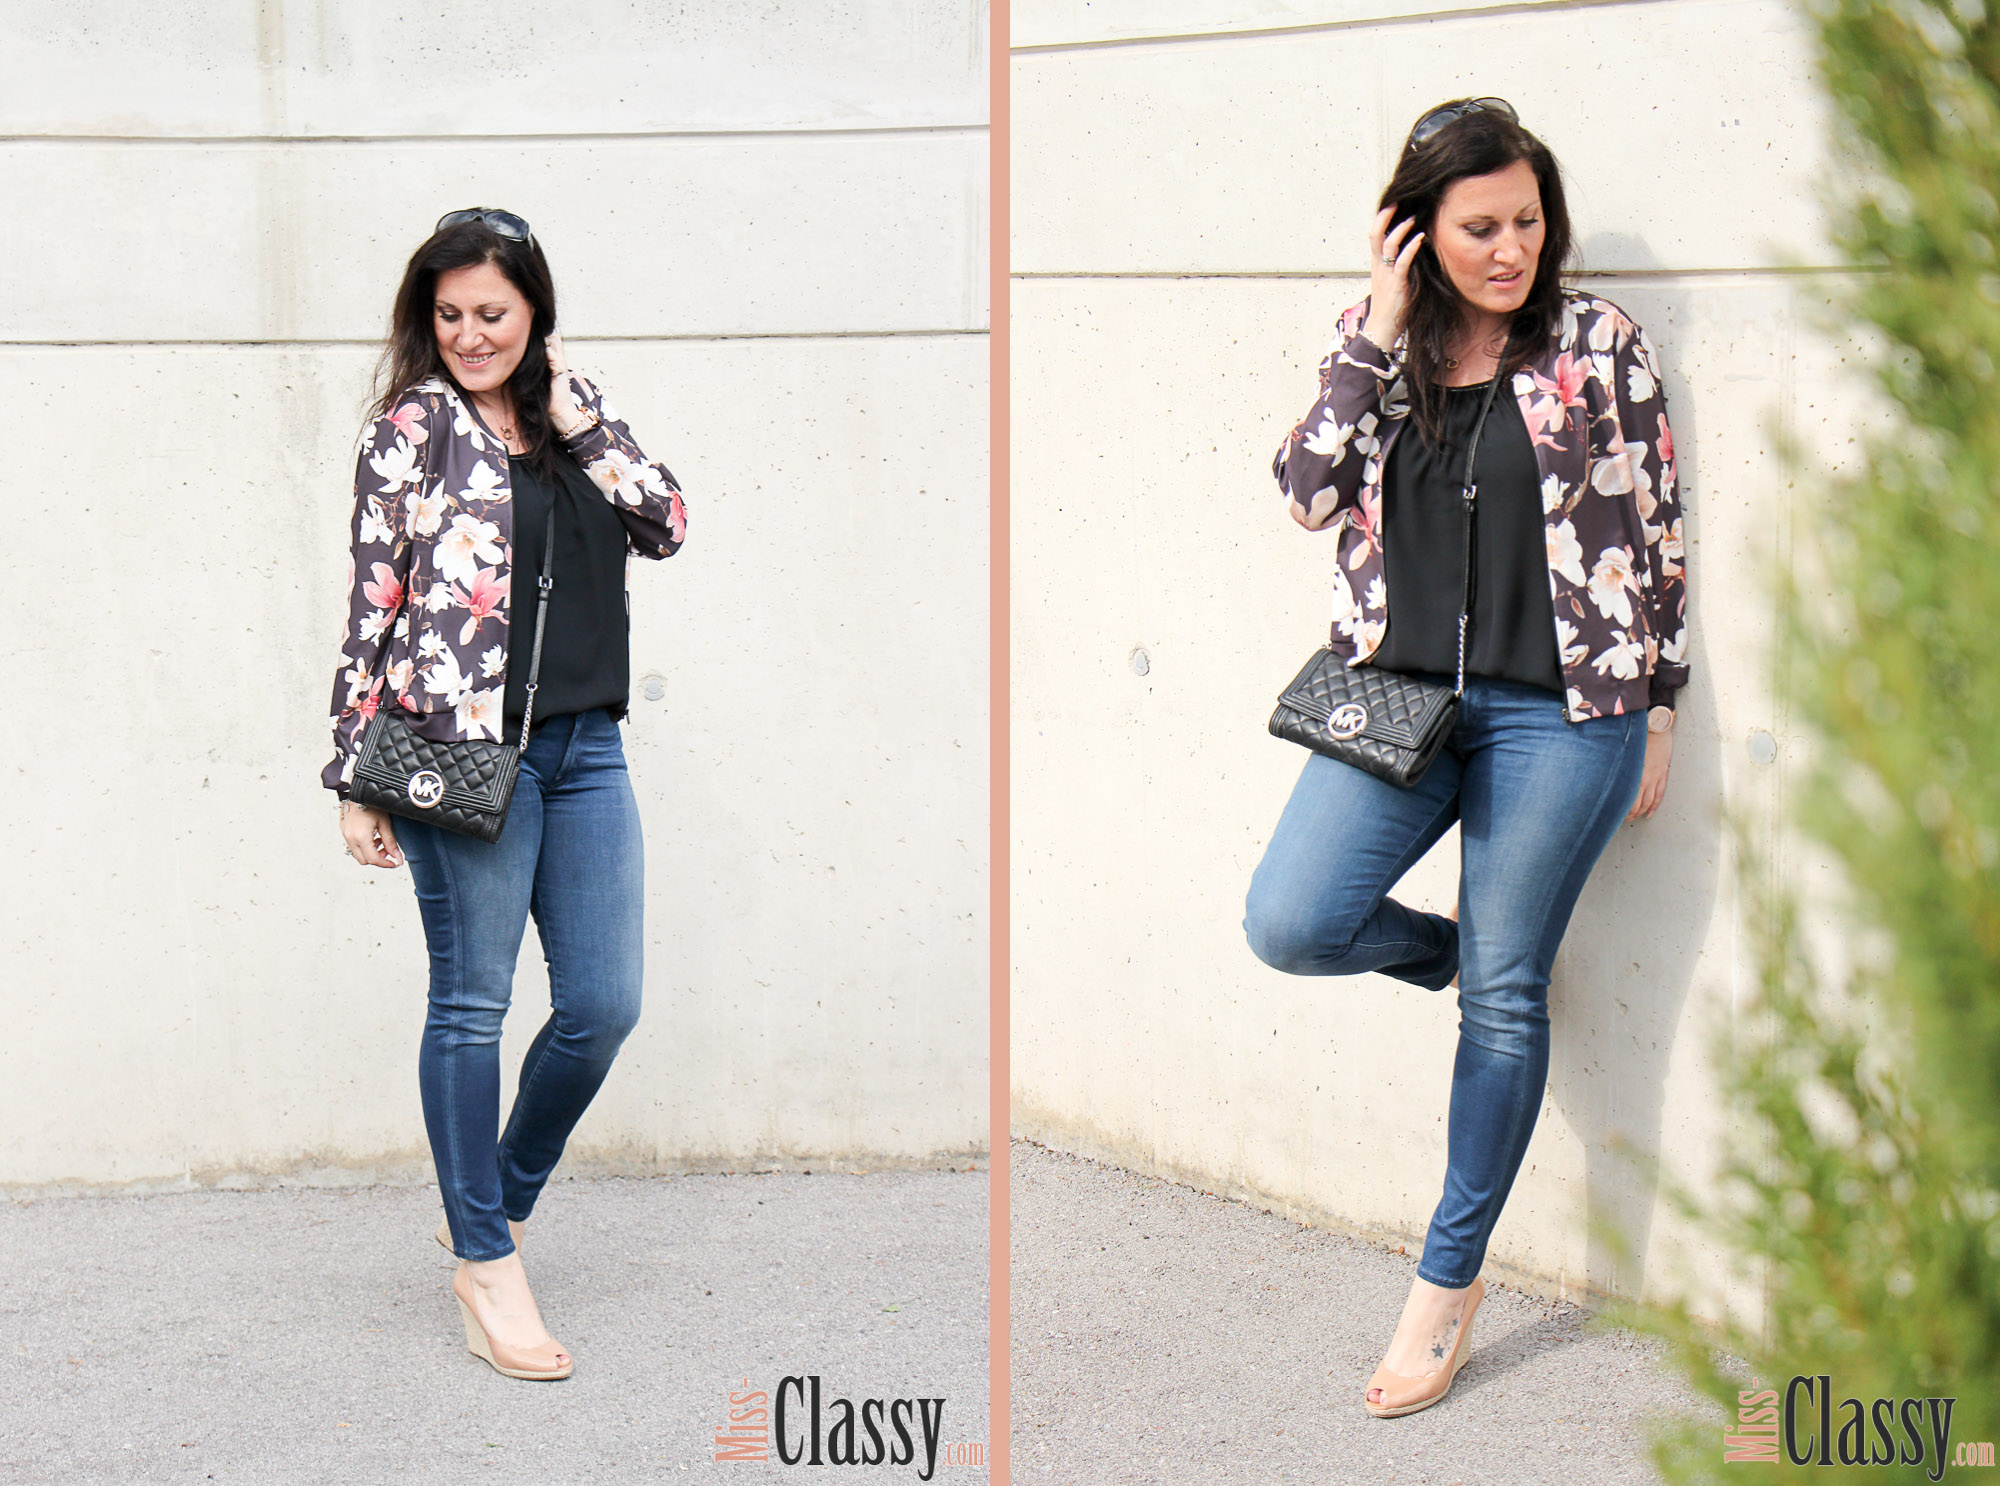 OUTFIT Blumenprint Blouson und Poncho-Bluse von Betty Barcley, Miss Classy, miss-classy.com, Fashionblog, Fashionblogger, Fashionblog Graz, Lifestyleblog Graz, Graz, Steiermark, Österreich, classy, beclassy, classy Fashion, Outfit, Style, Fashion, Mode, OOTD, Betty Barclay, Cartoon, Sonnenbrille Vogue, Clutch, Michael Kors, Wedges, Blumenprint, Jeans 7ForAllManKind